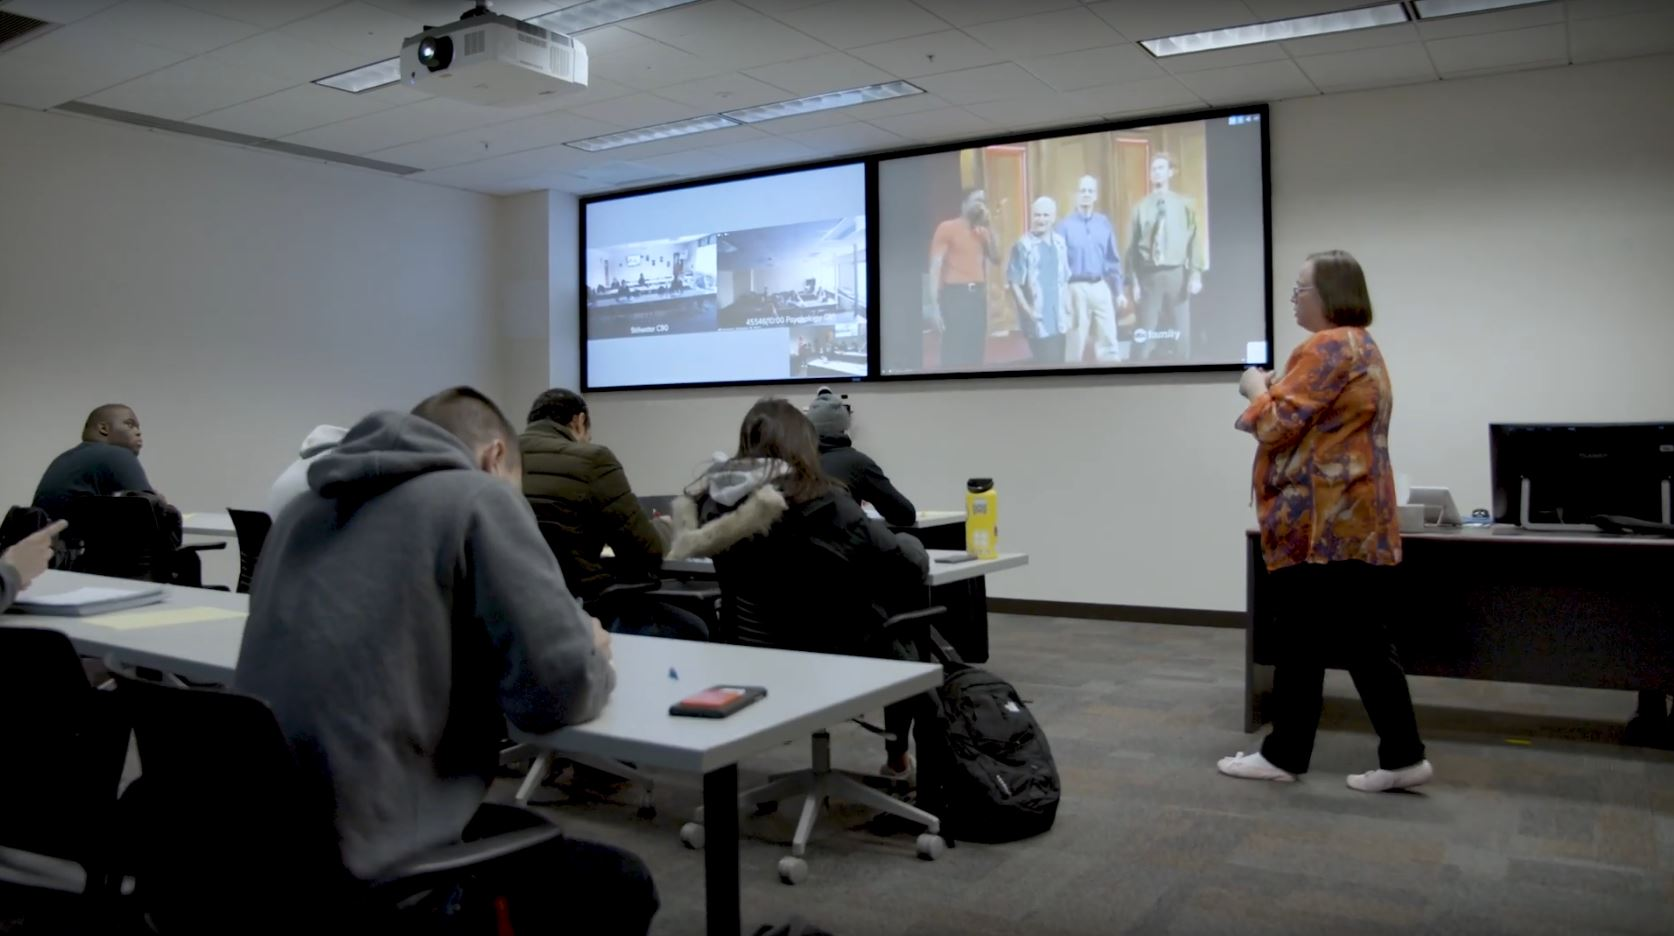 Instructor and students in a videoconference classroom